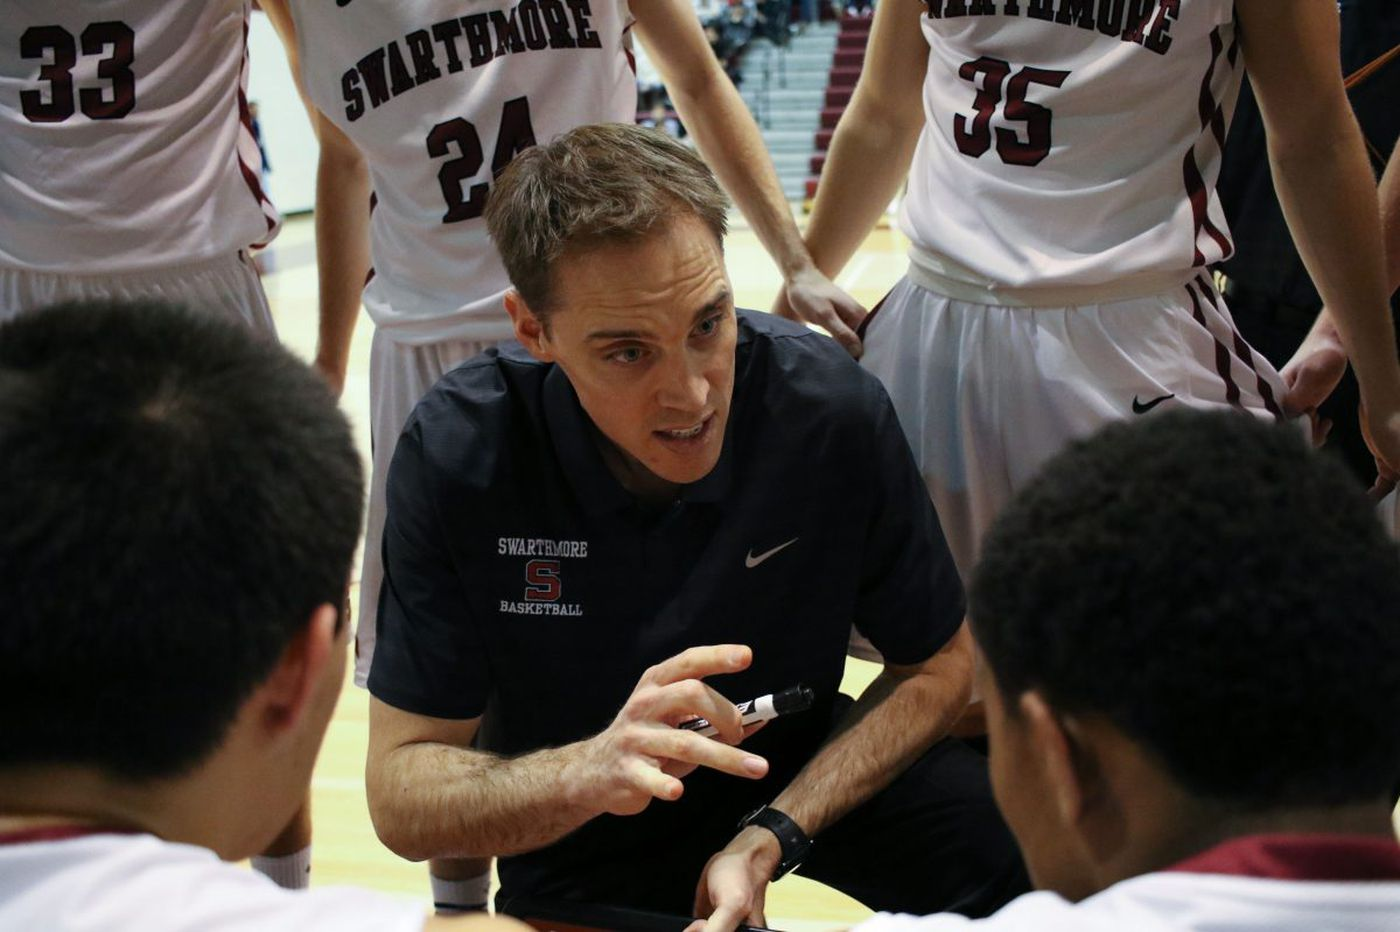 Swarthmore College beats Plattsburgh State in NCAA Division III tournament